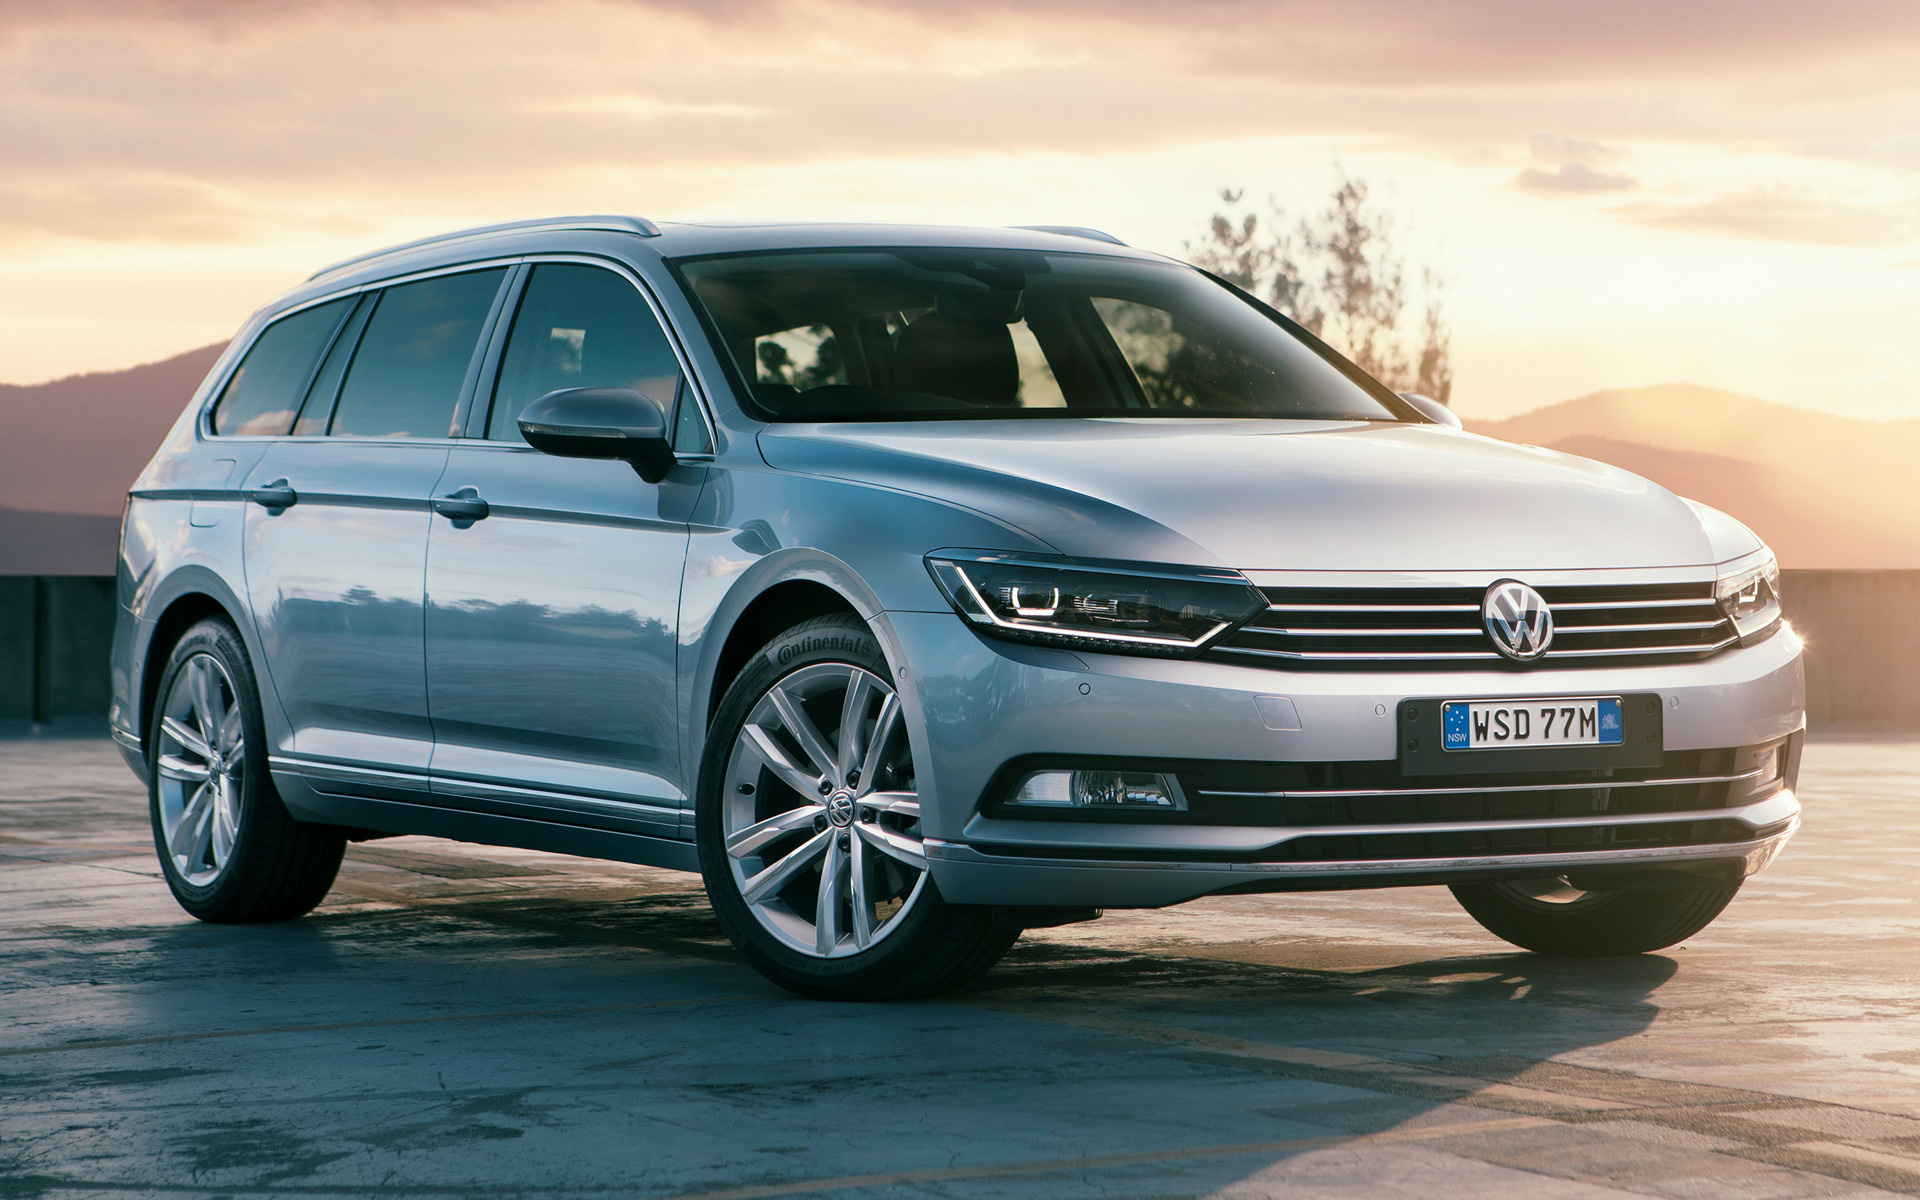 Volkswagen Passat Wagon (2015) AU Wallpapers and HD Images - Car Pixel